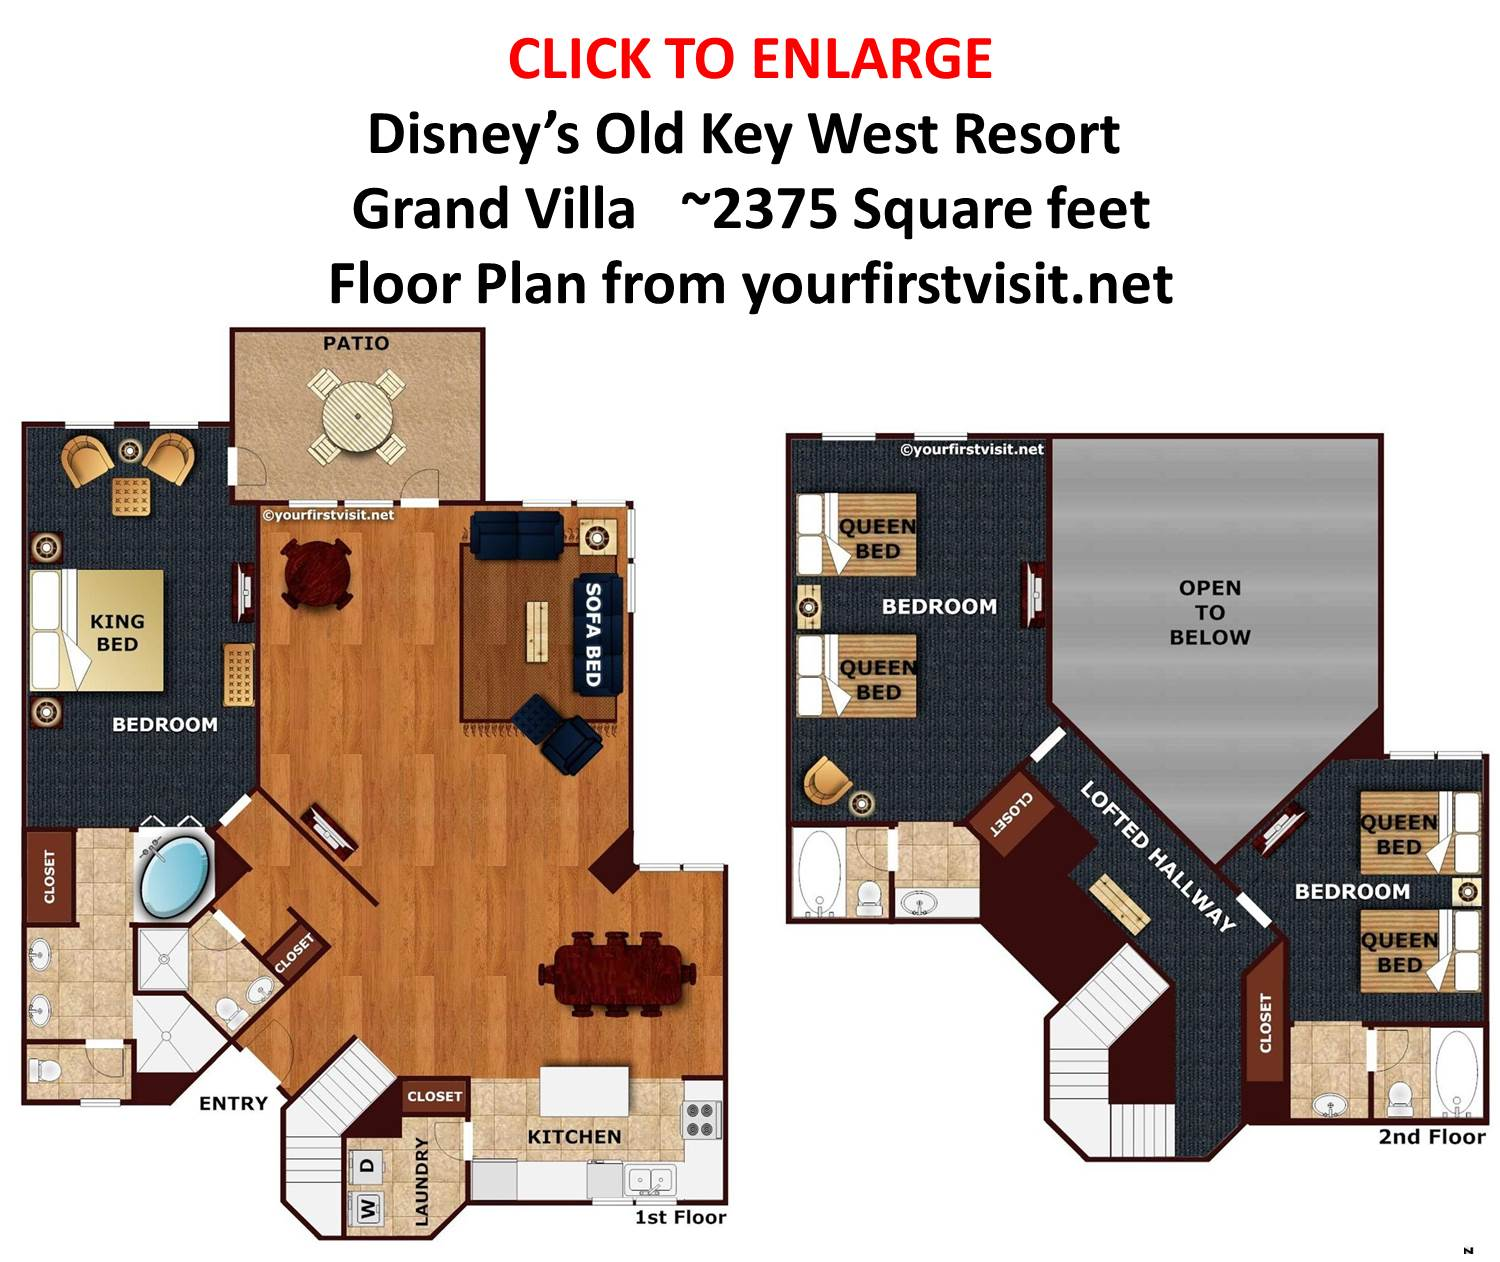 Grand villa floor plan disneys old key west resort from - 3 bedroom grand villa disney animal kingdom ...